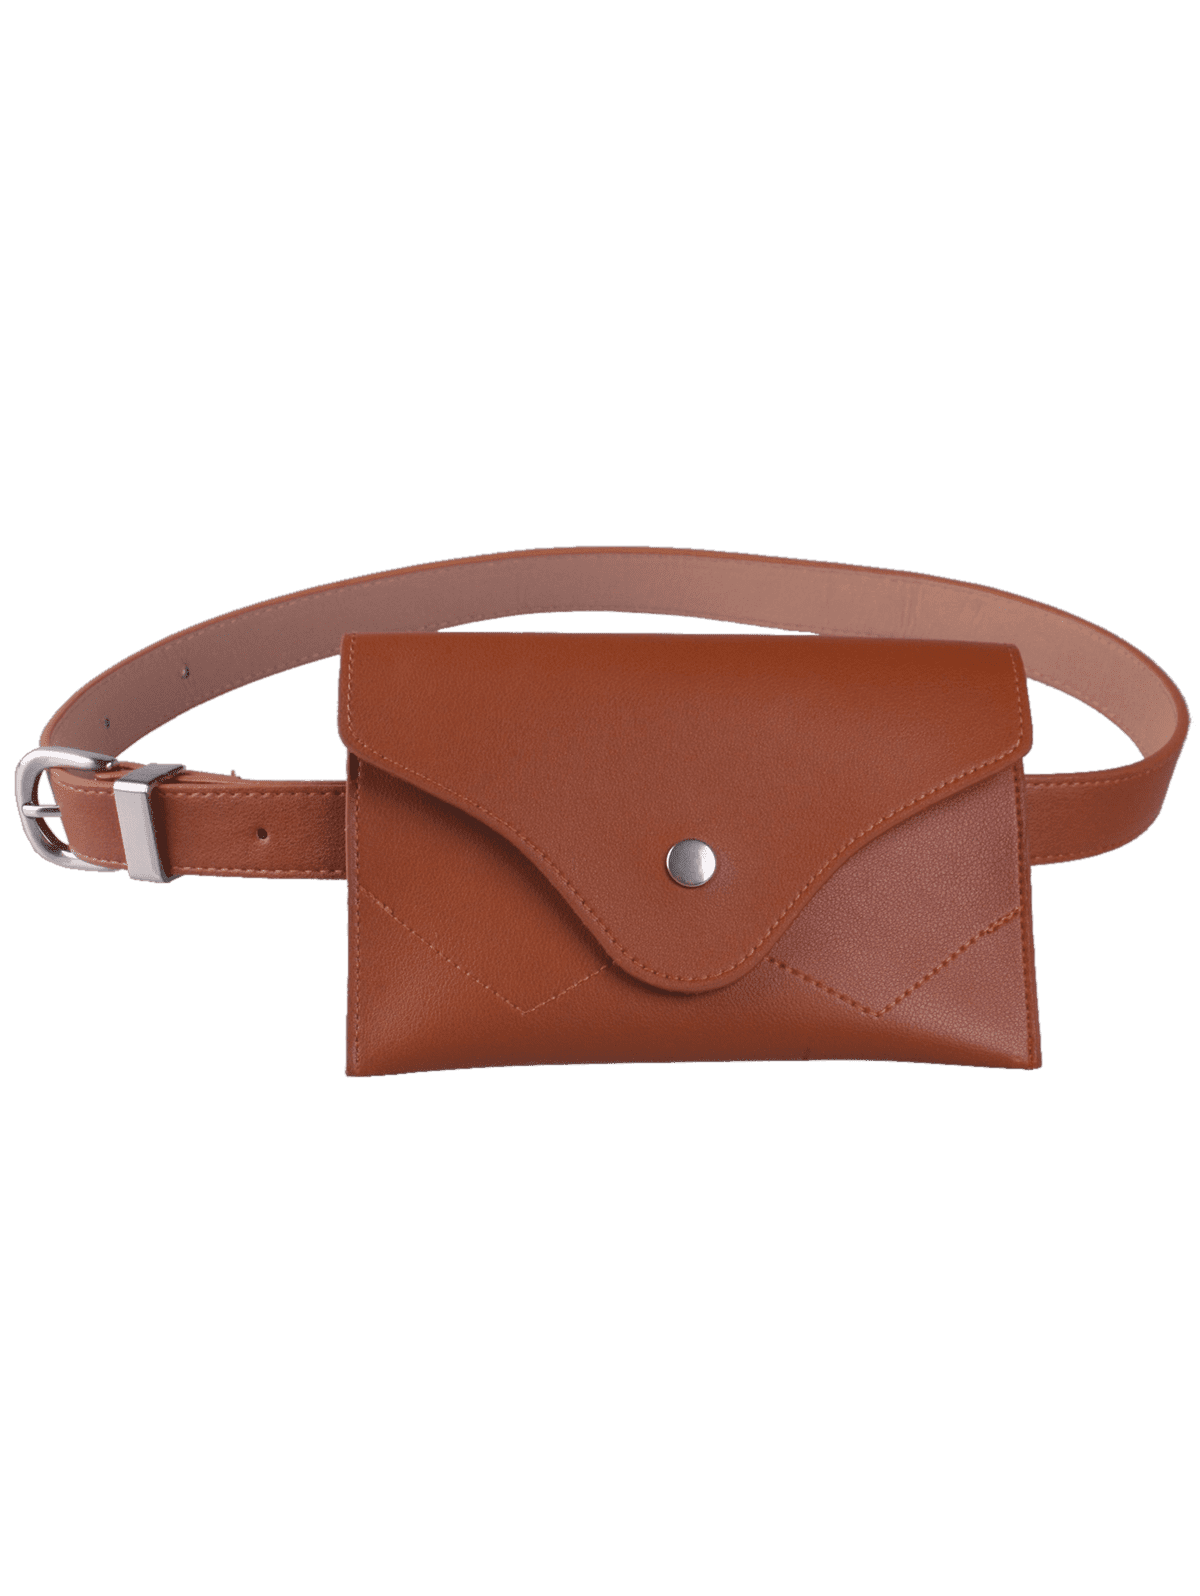 Waist band png. Pin buckle faux leather